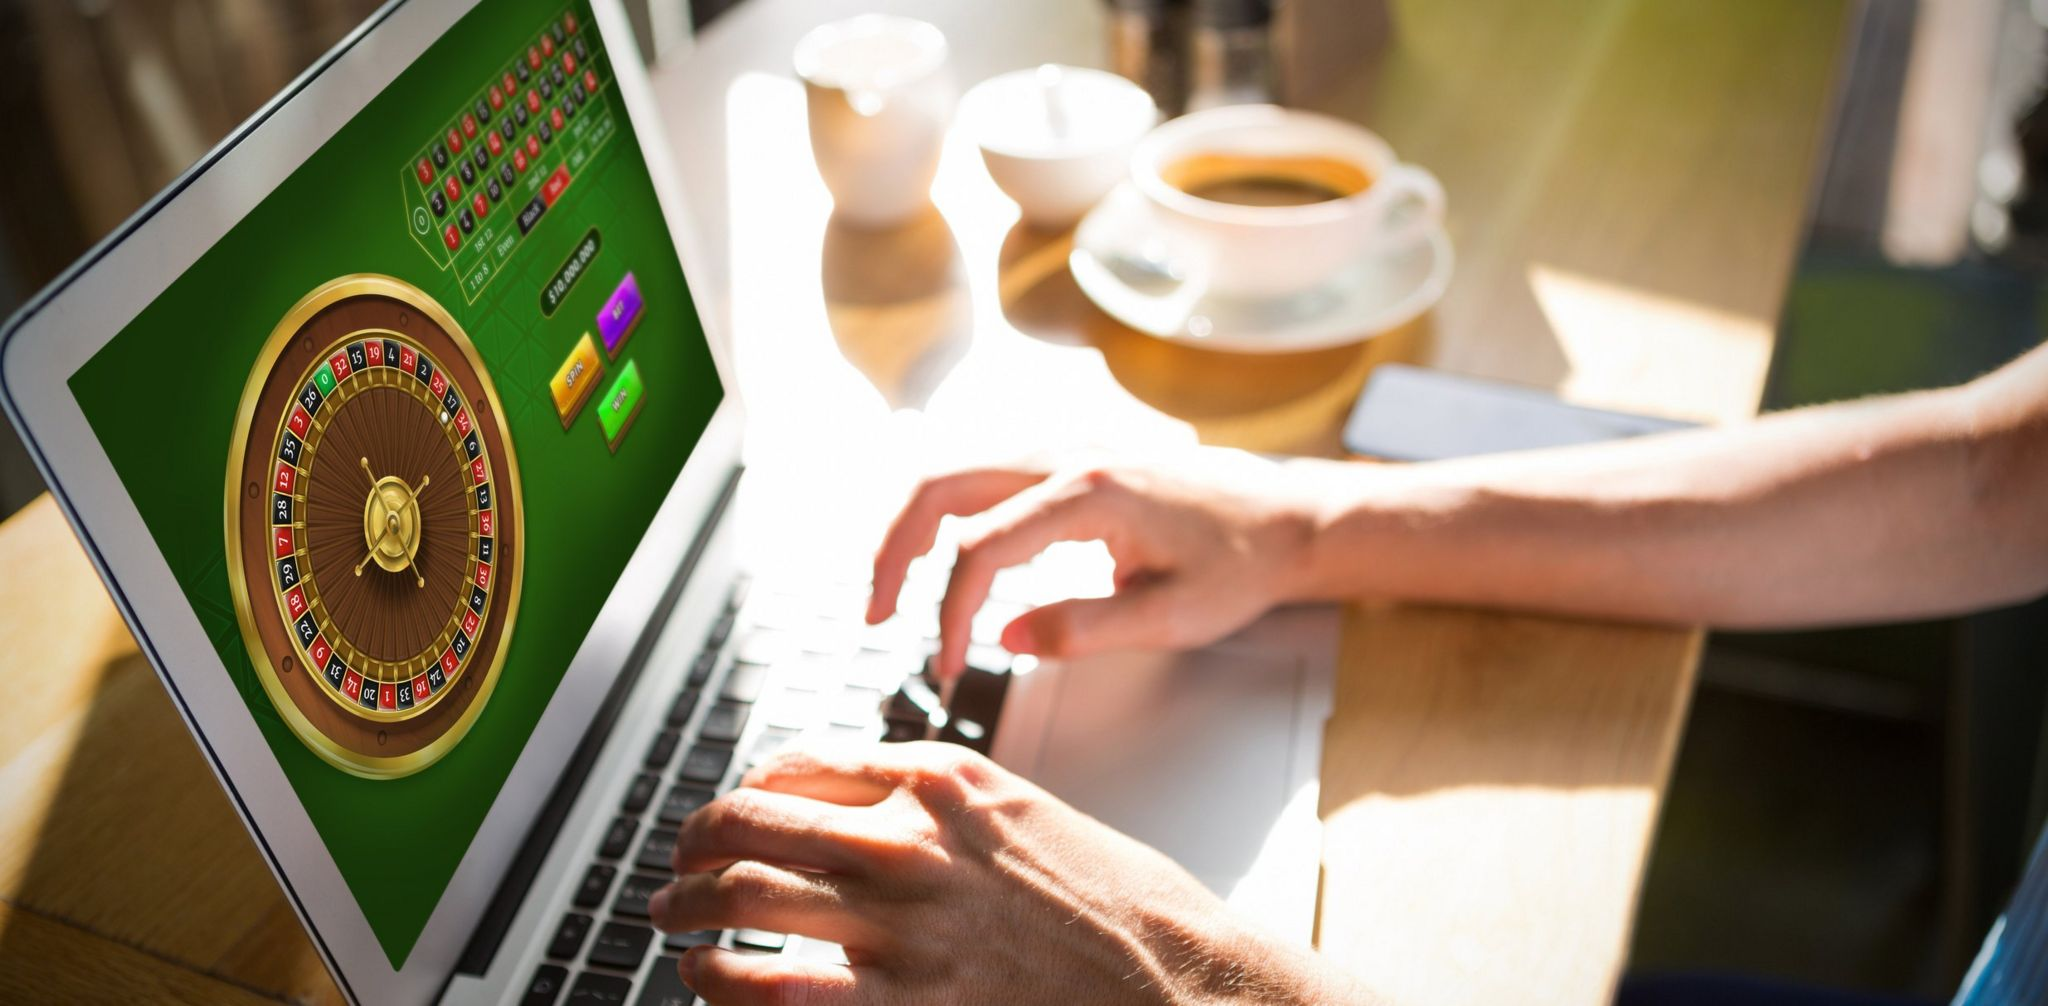 Online gambling: 'I stole £70,000 to feed my addiction' - BBC News